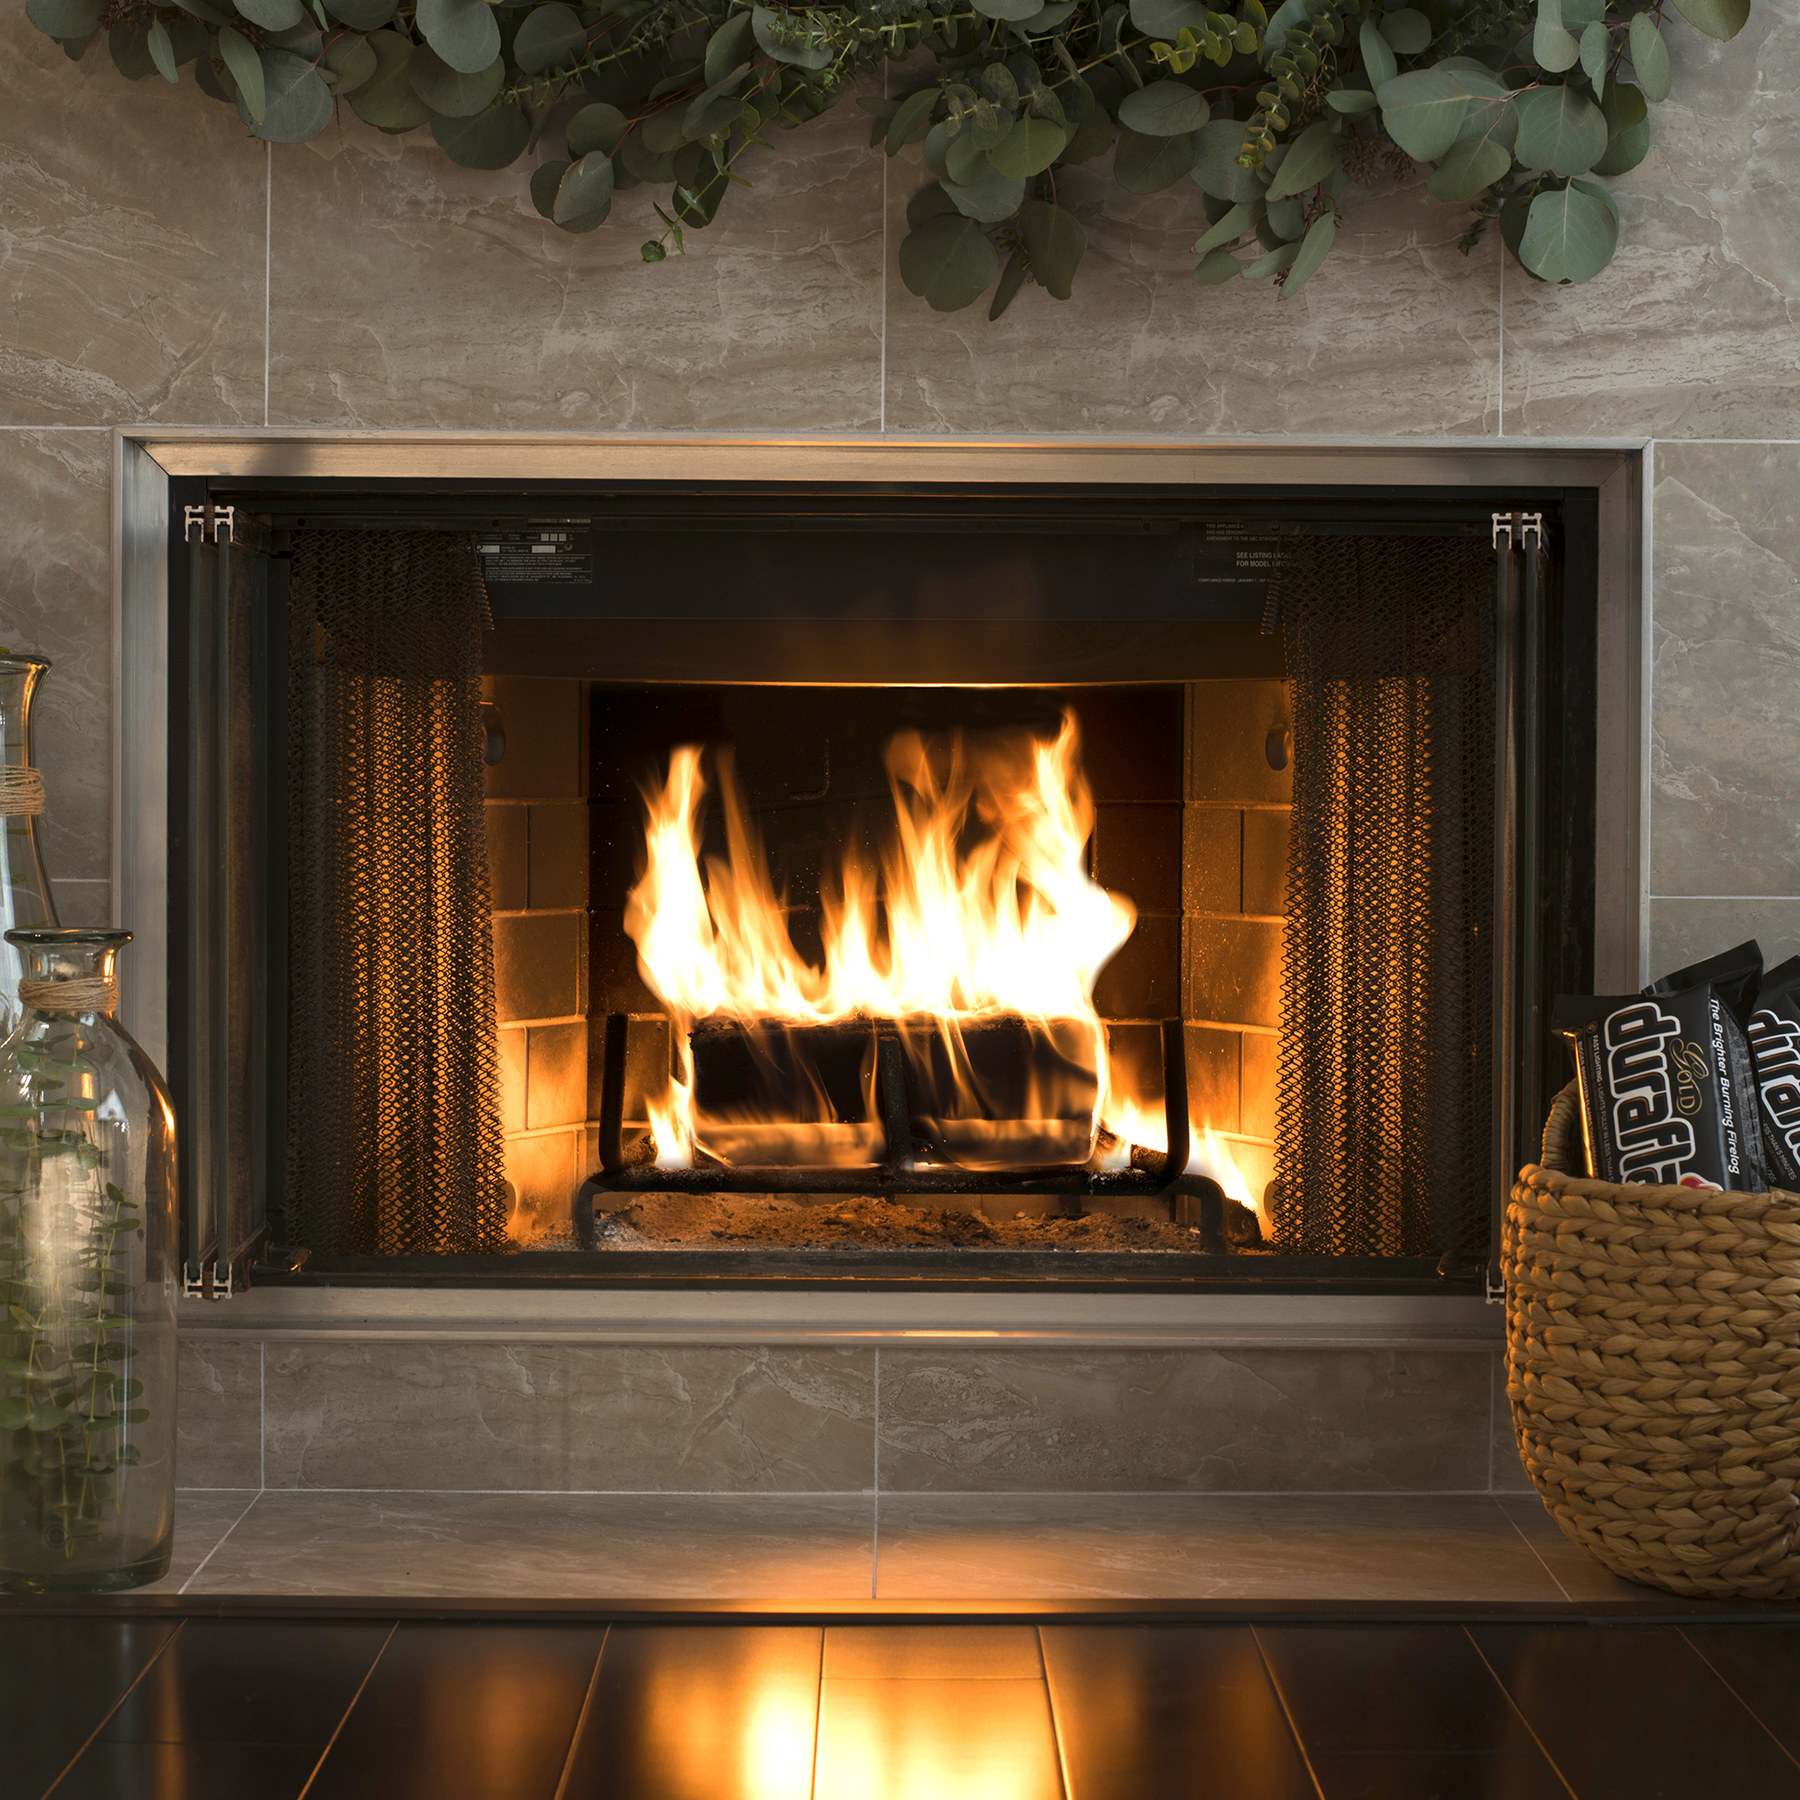 Packs of Duraflame logs next to a roaring fire